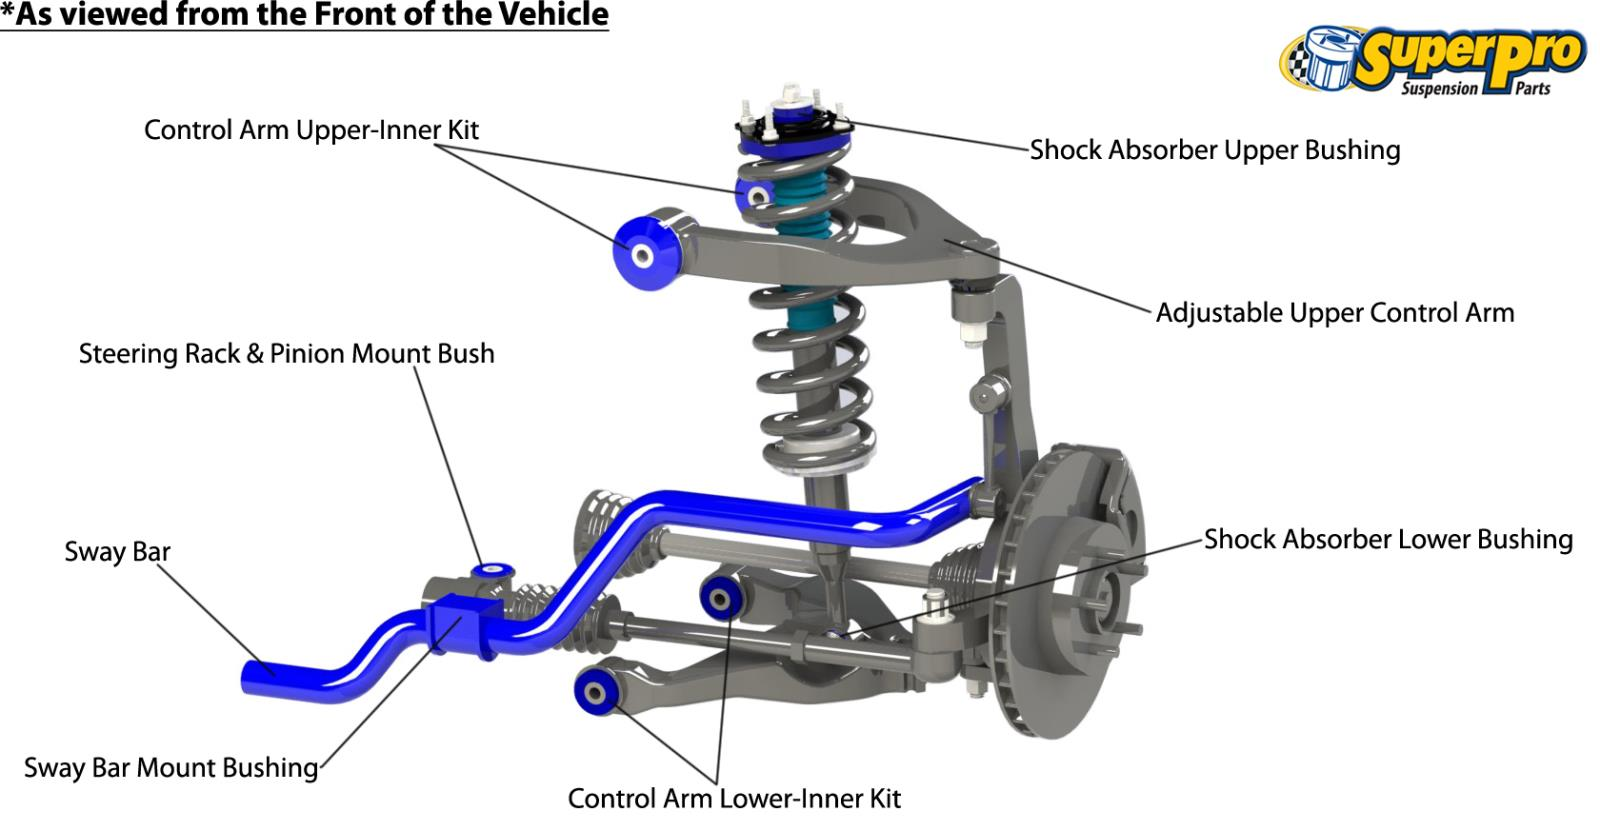 Front suspension diagram for NISSAN NAVARA 2015-on - NP300 4WD Dual Cab (Coil Spring Rear)